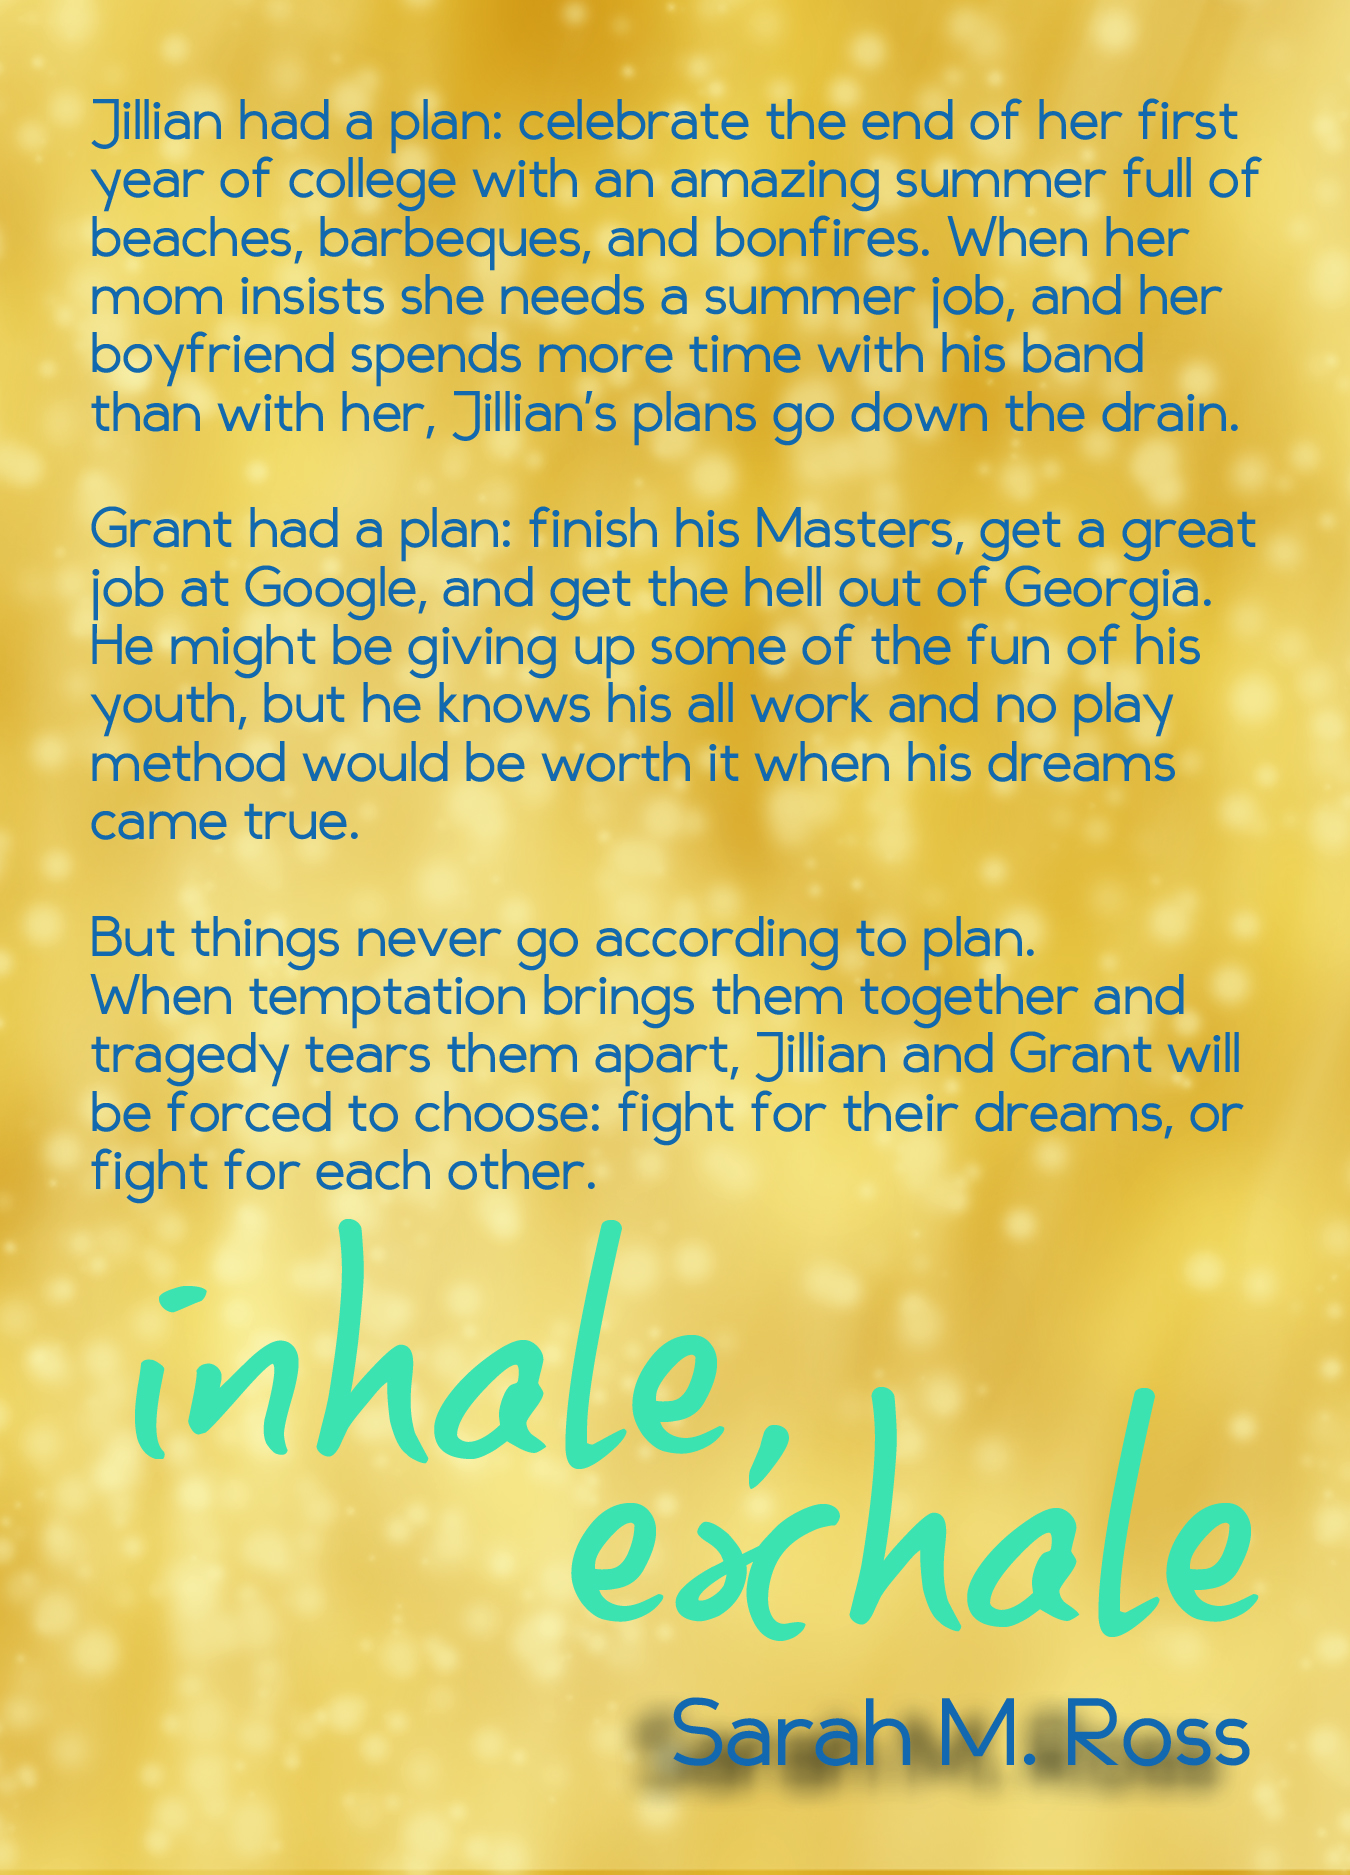 Inhale, Exhale synopsis